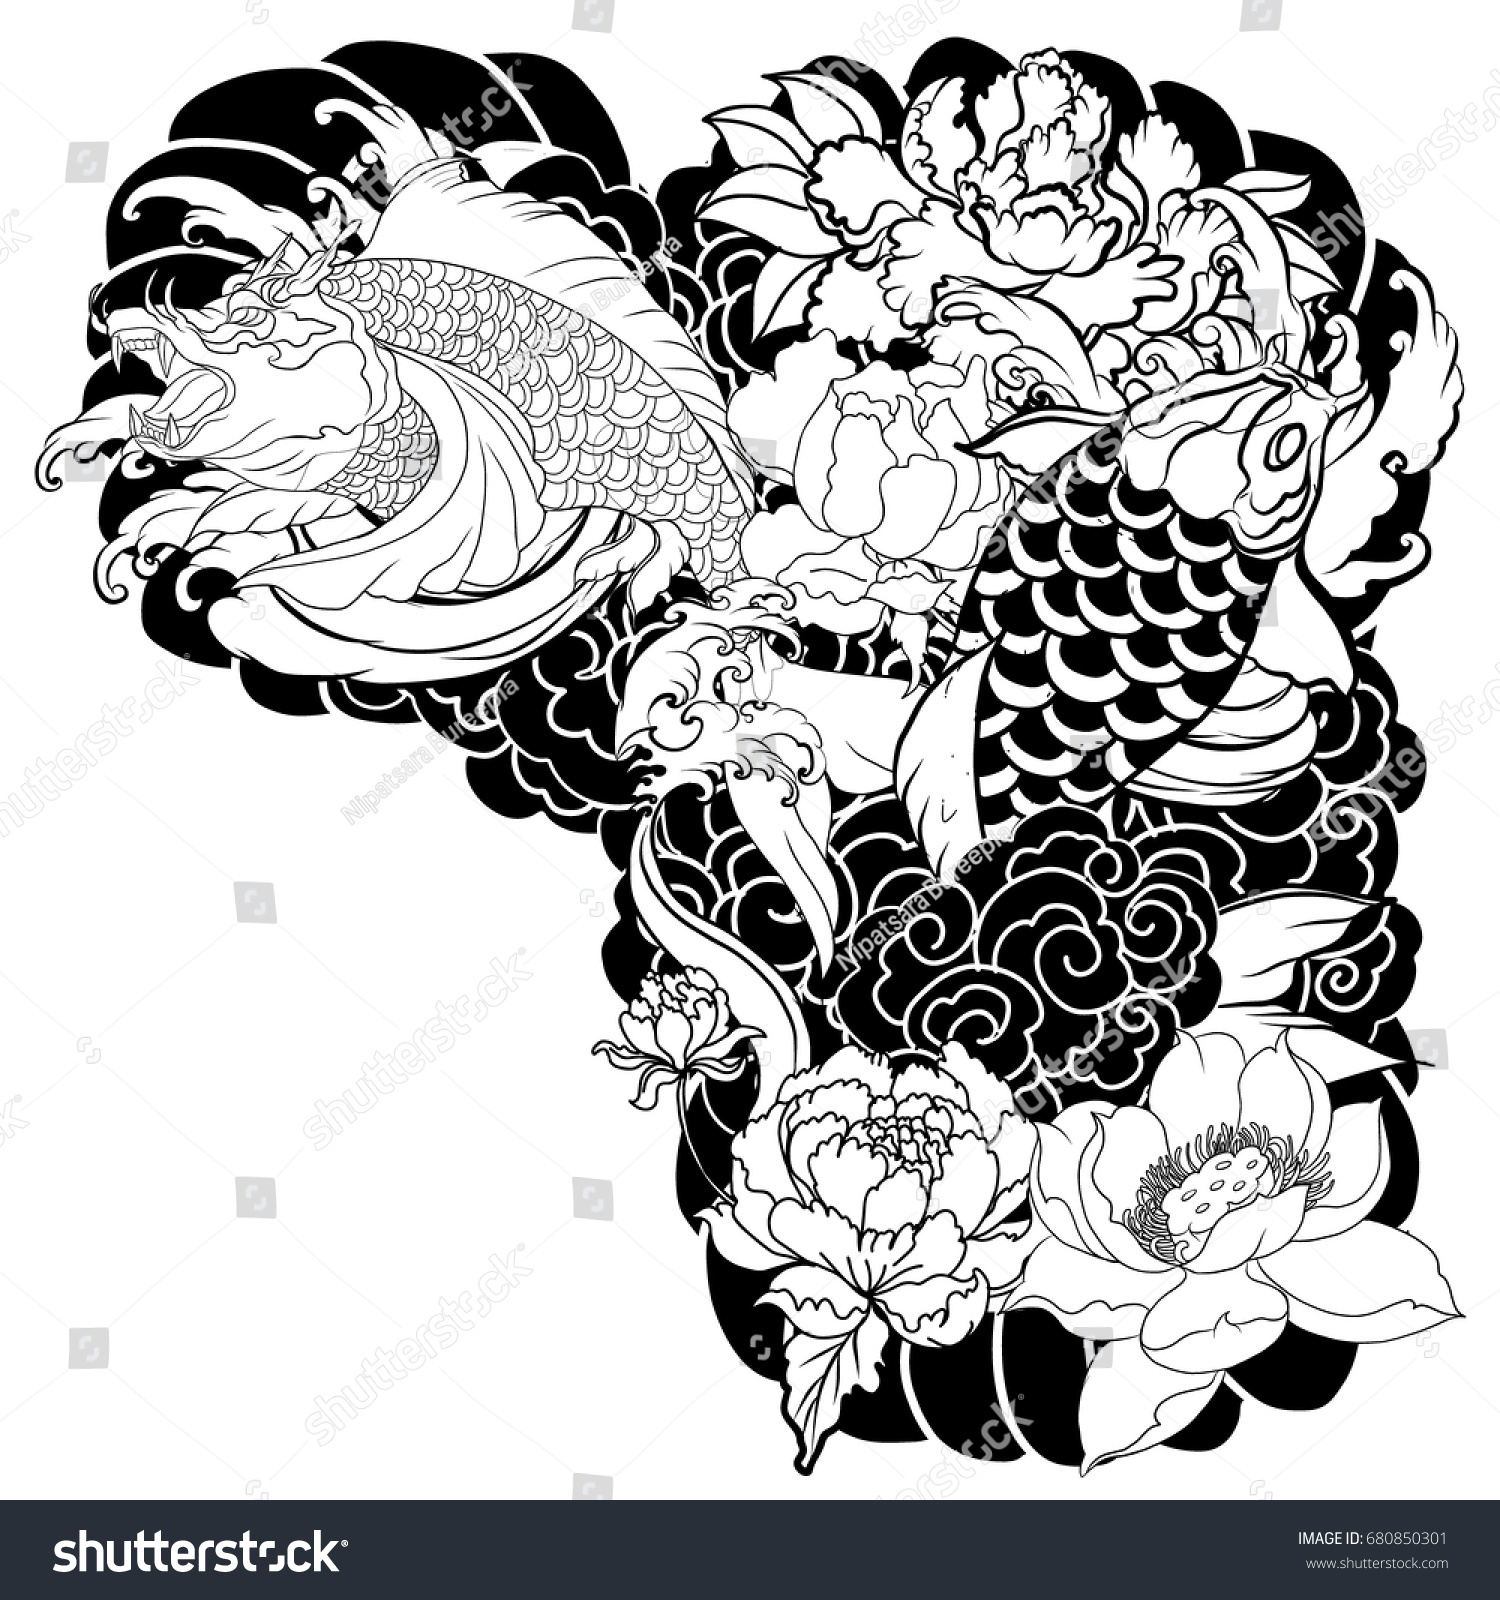 Hand drawn koi carp fish with peony flowers lotuses and water splashes traditional japanese chest or upper arm tattoo design or coloring book